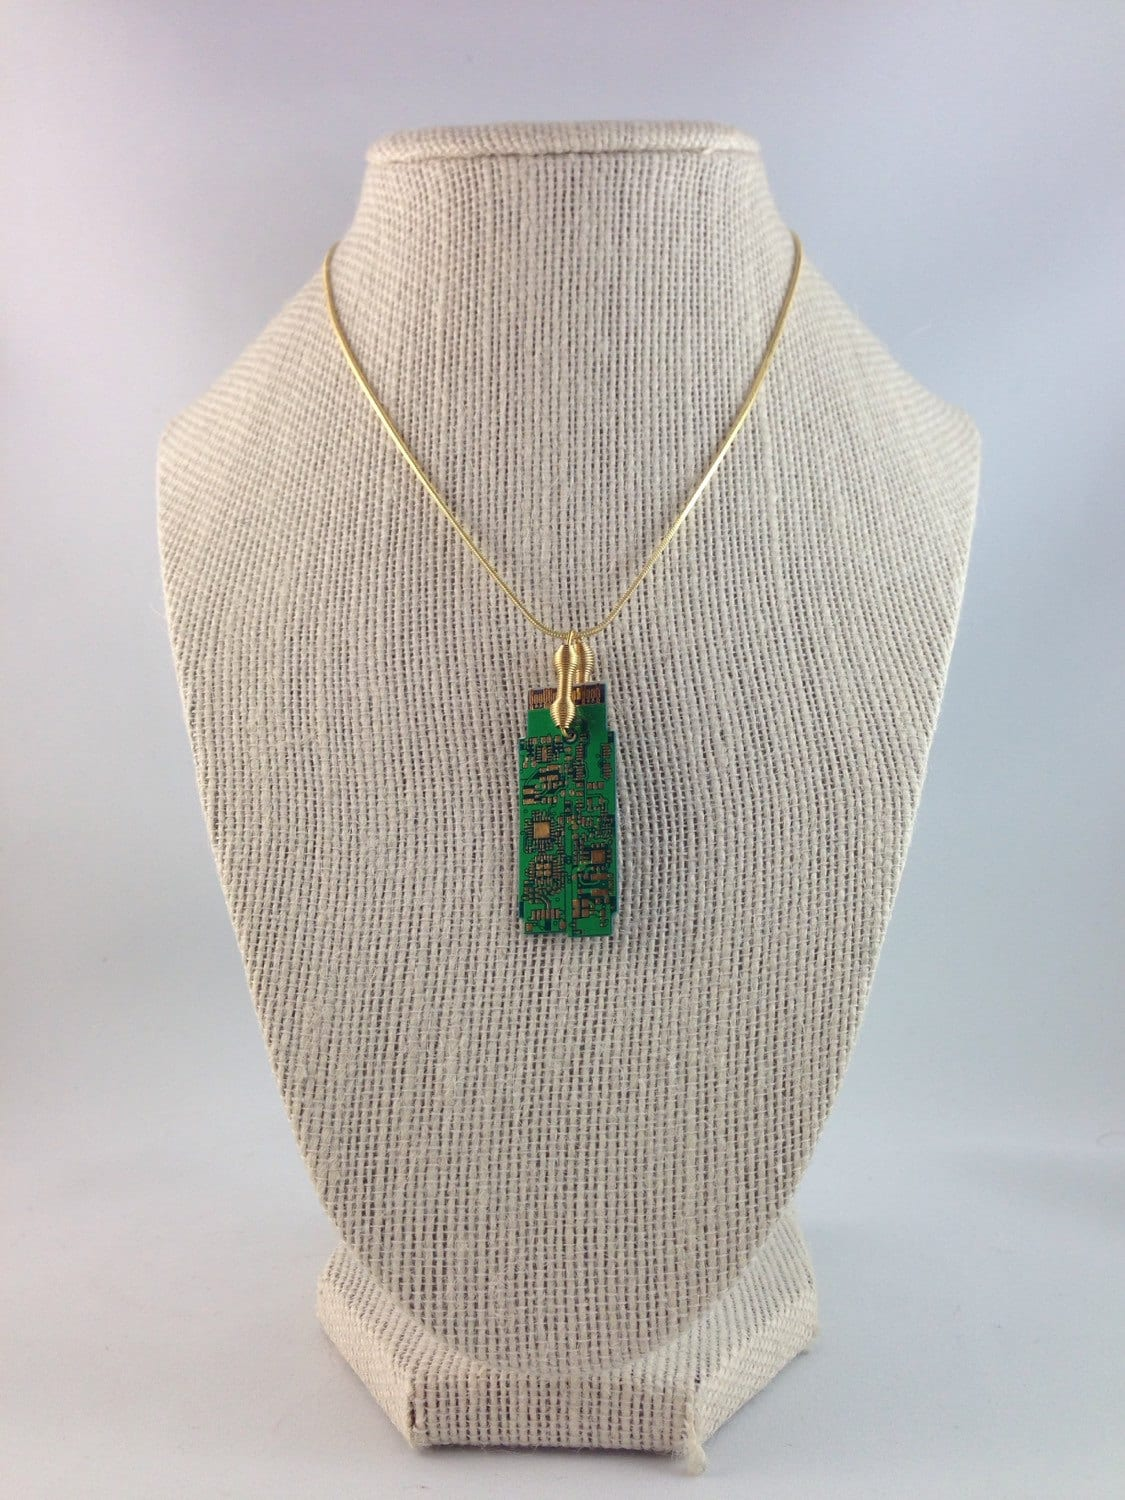 Green Gold Circuit Board Pendant With Plated Chain Techie Necklace Gallery Photo